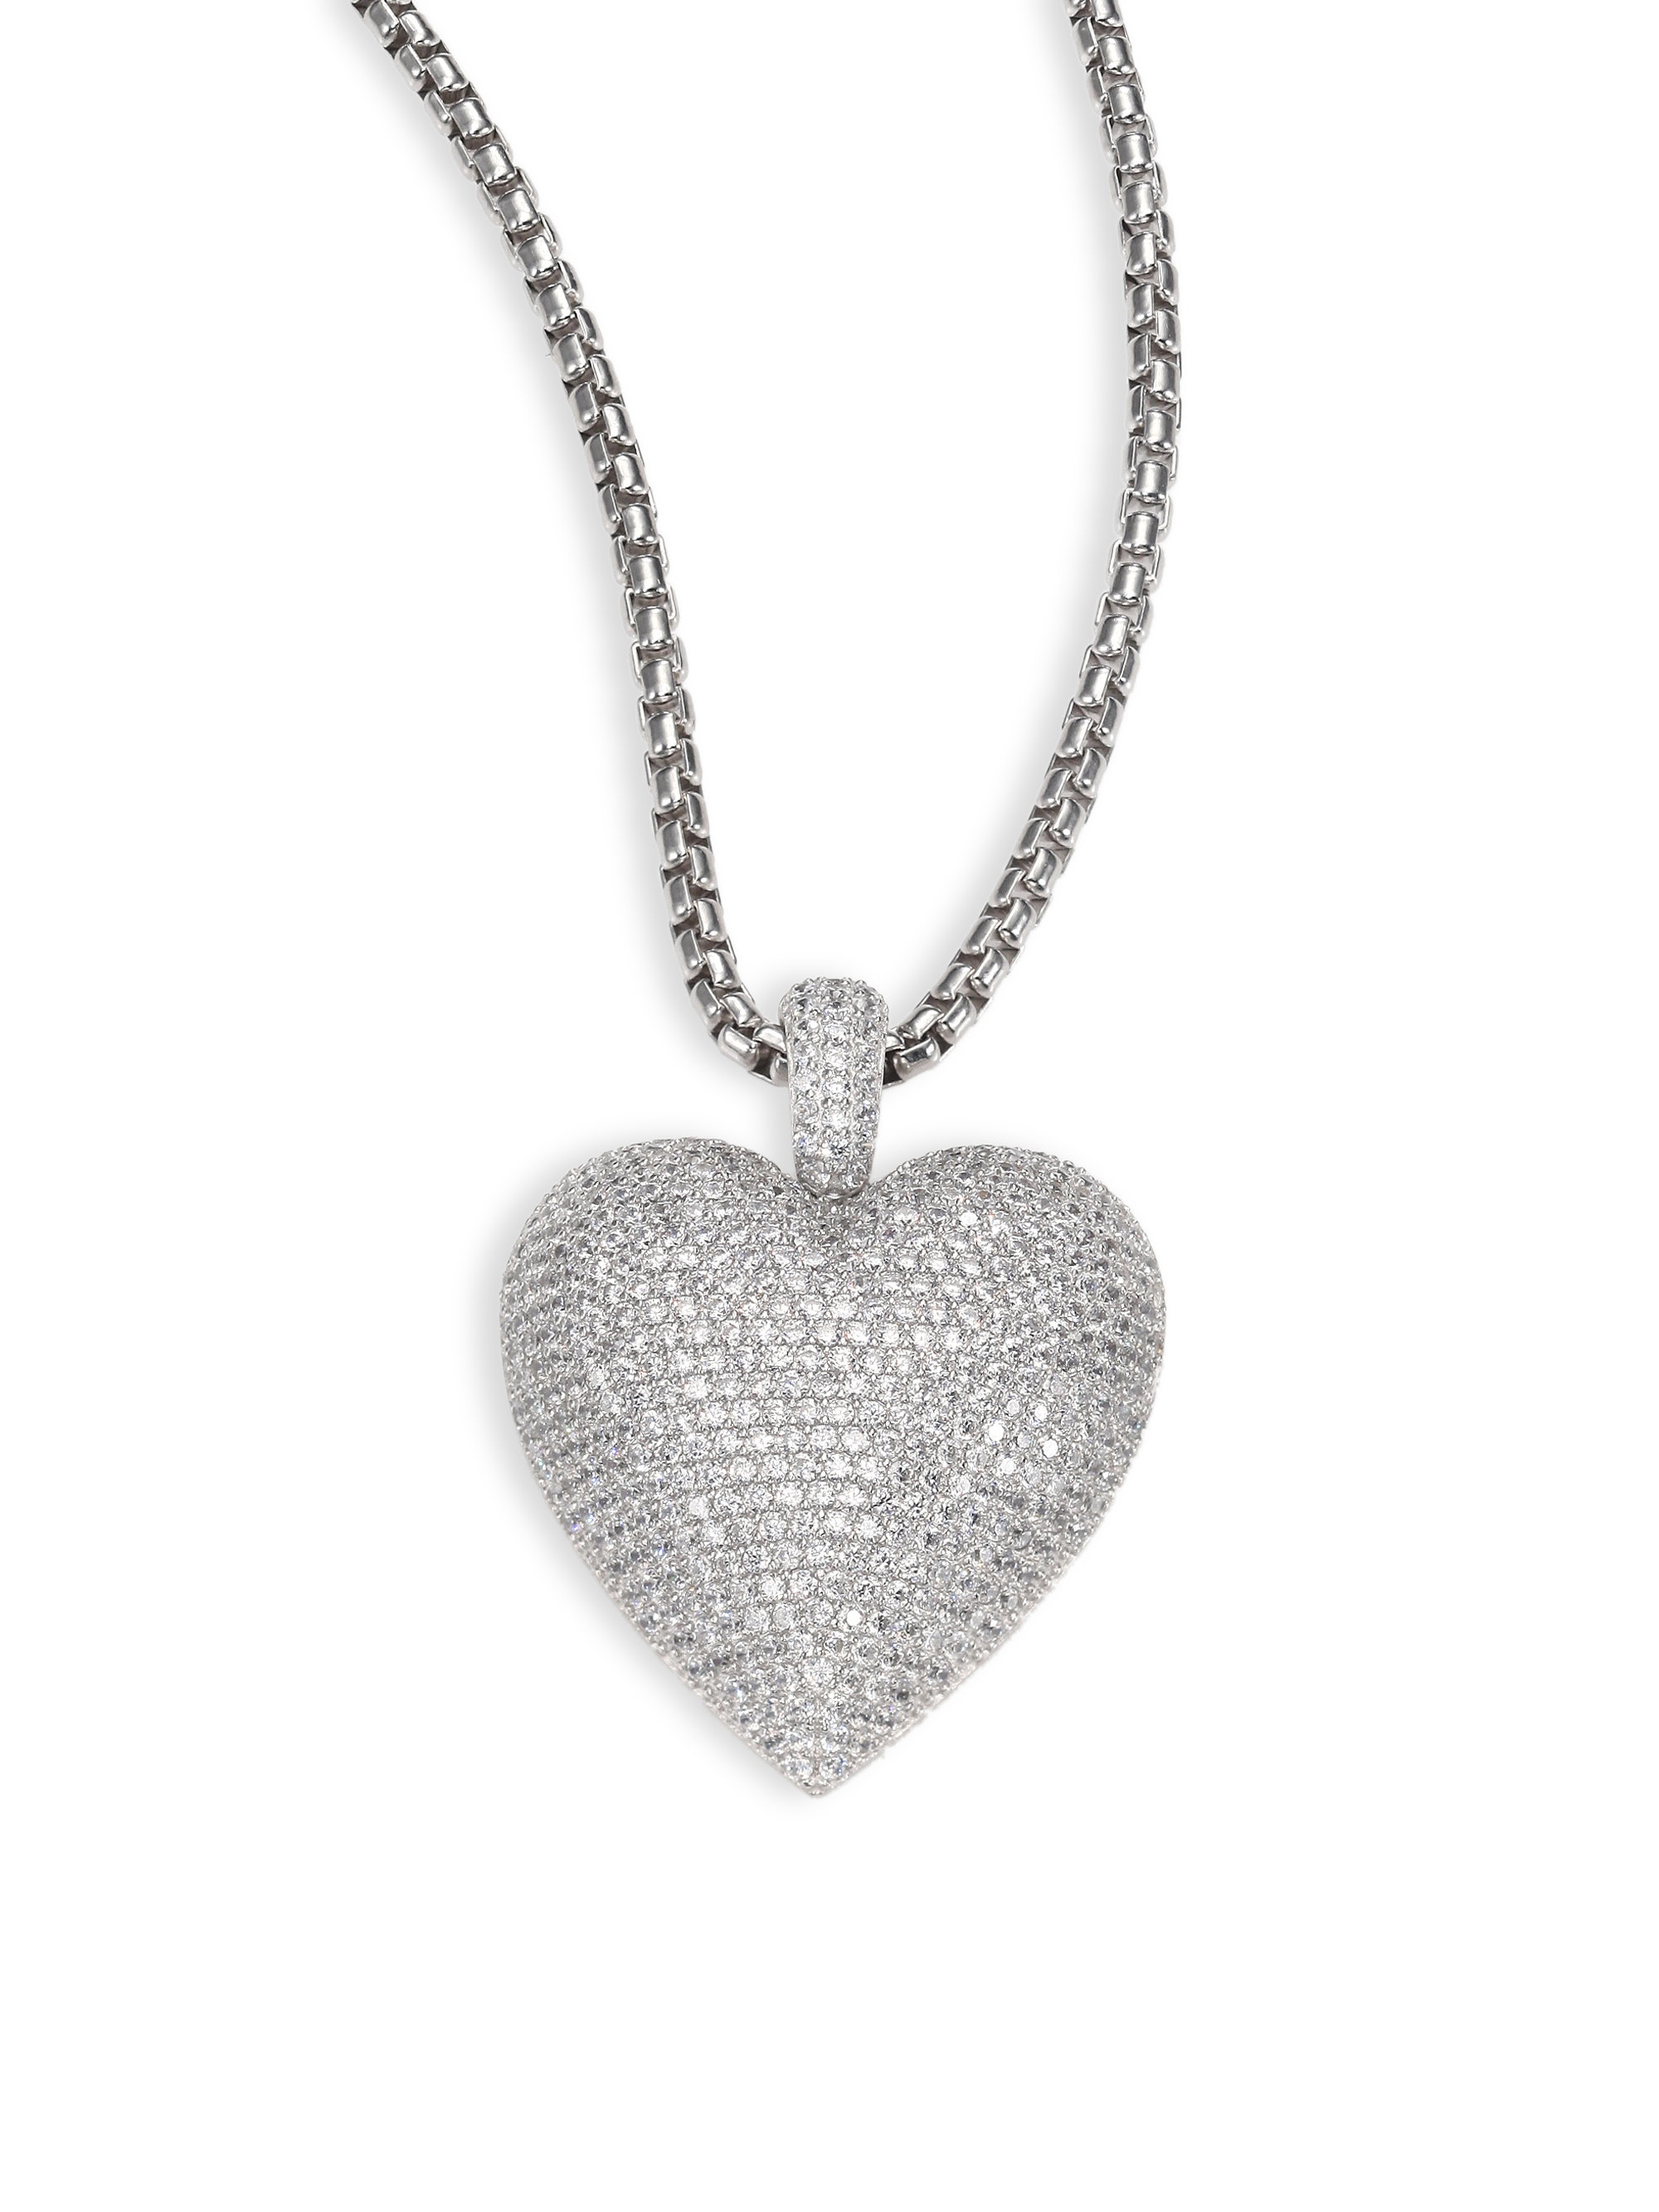 Lyst adriana orsini large pave heart pendant necklace in metallic gallery mozeypictures Choice Image